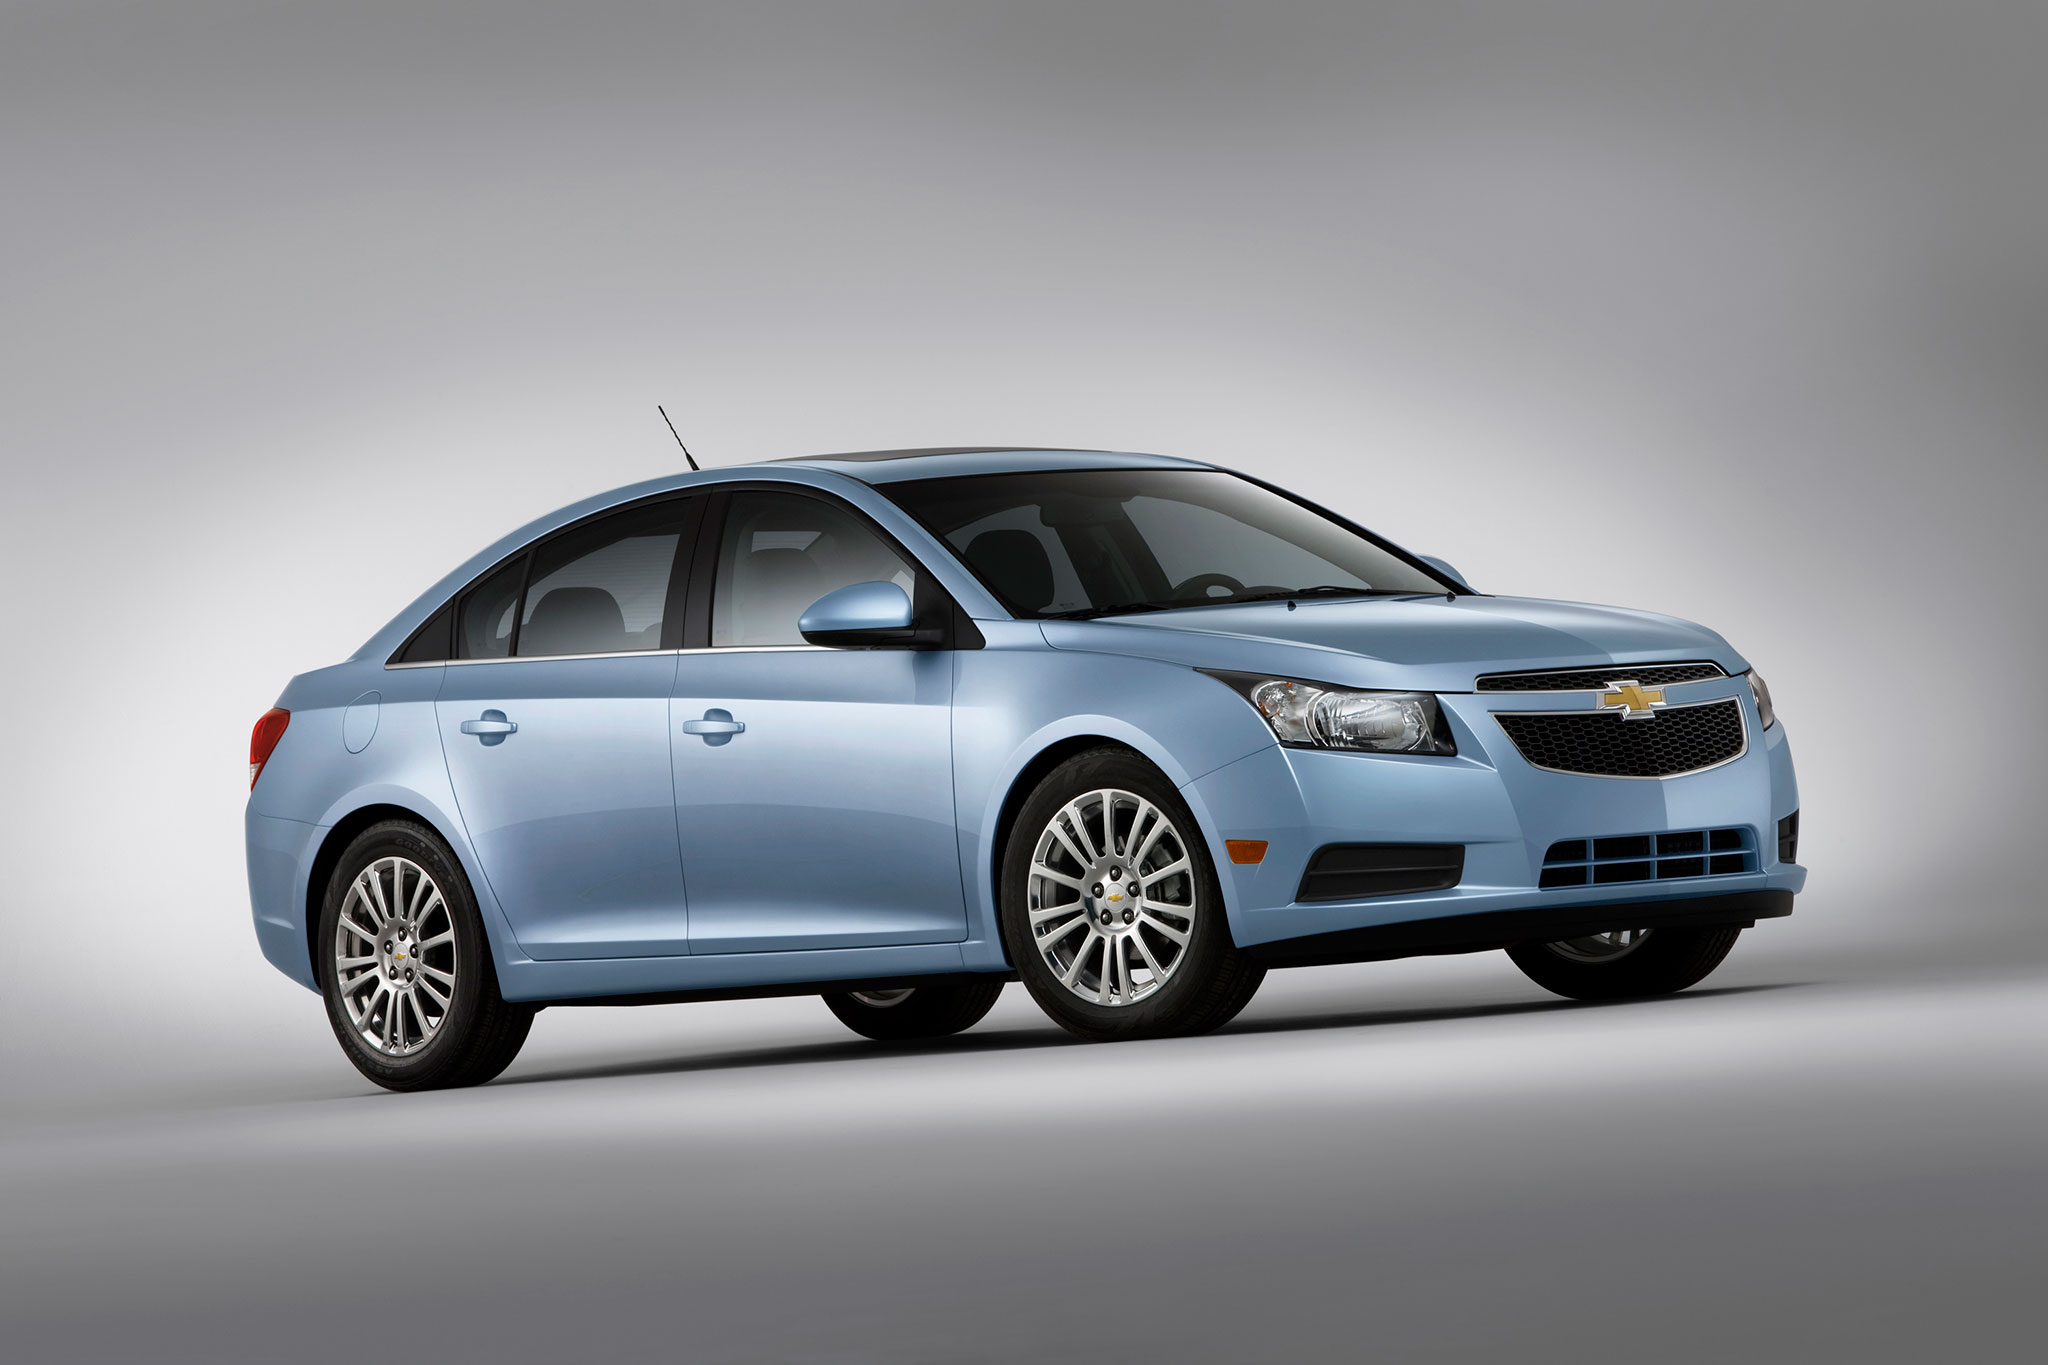 GM Stops Sale of 2013 14 Chevrolet Cruze Due to Takata Airbag Defect